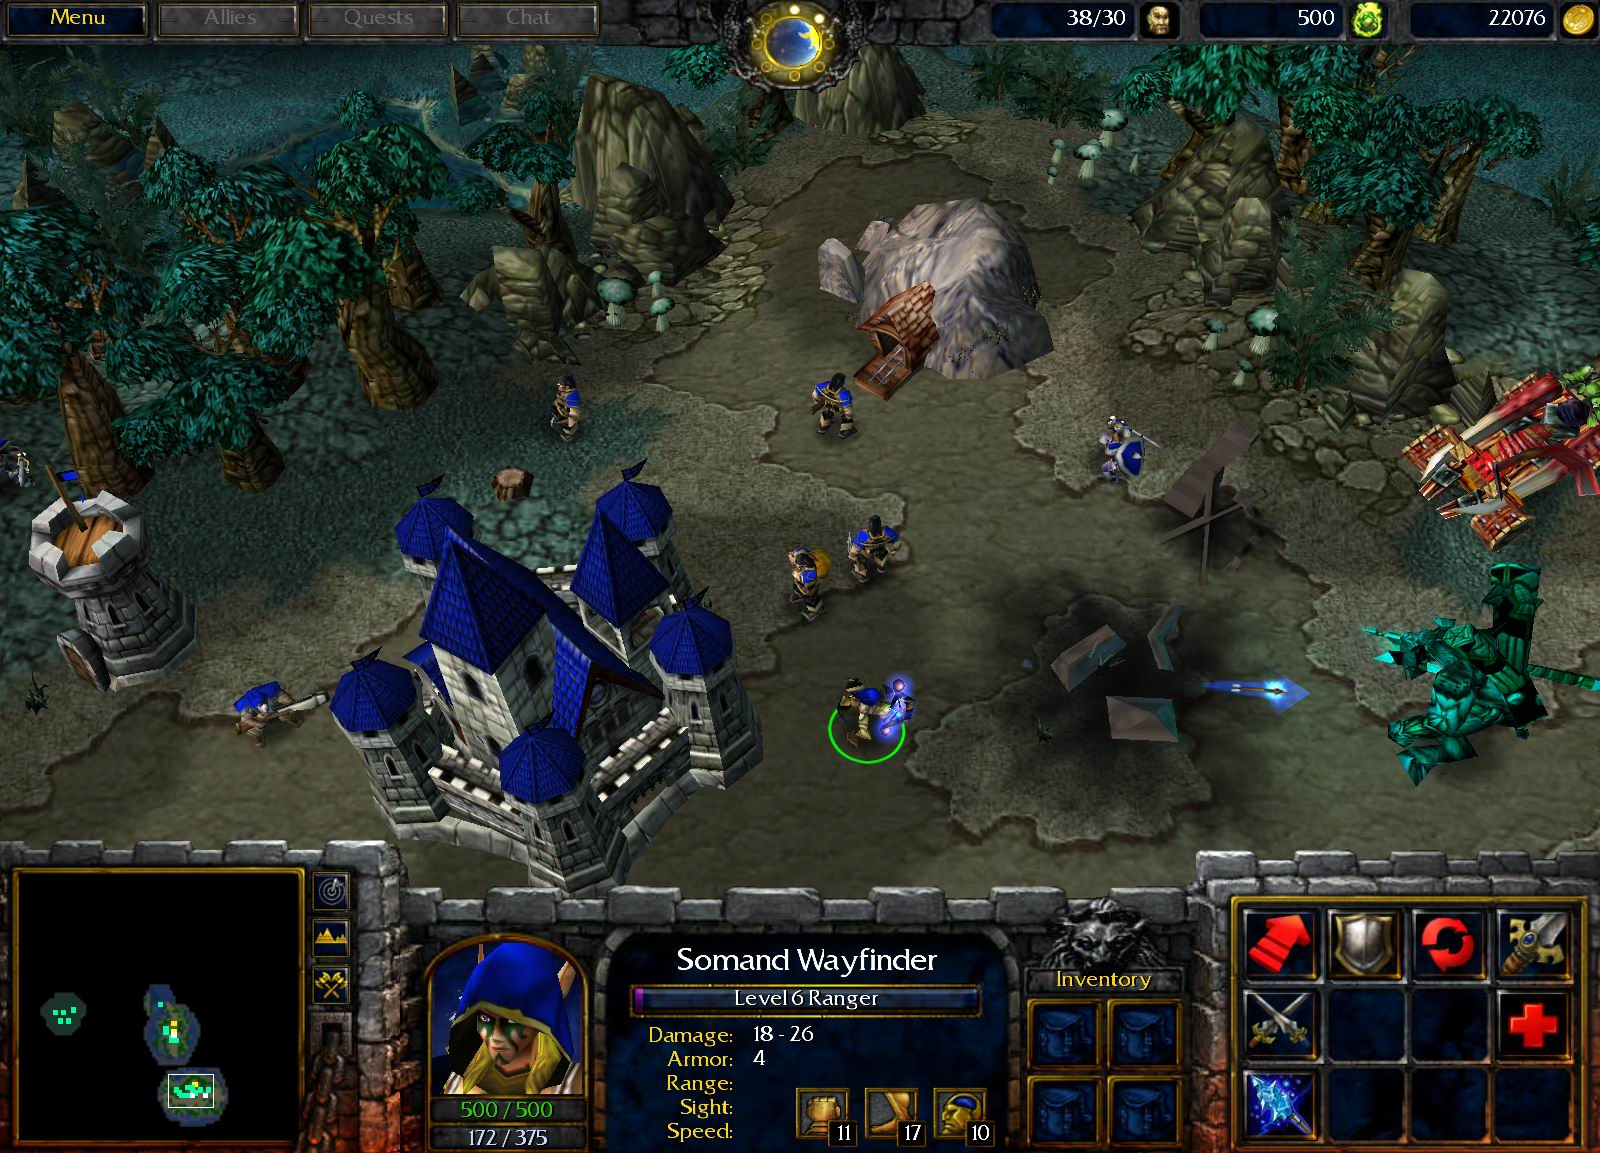 Warcraft 3 demon craft download naked pictures